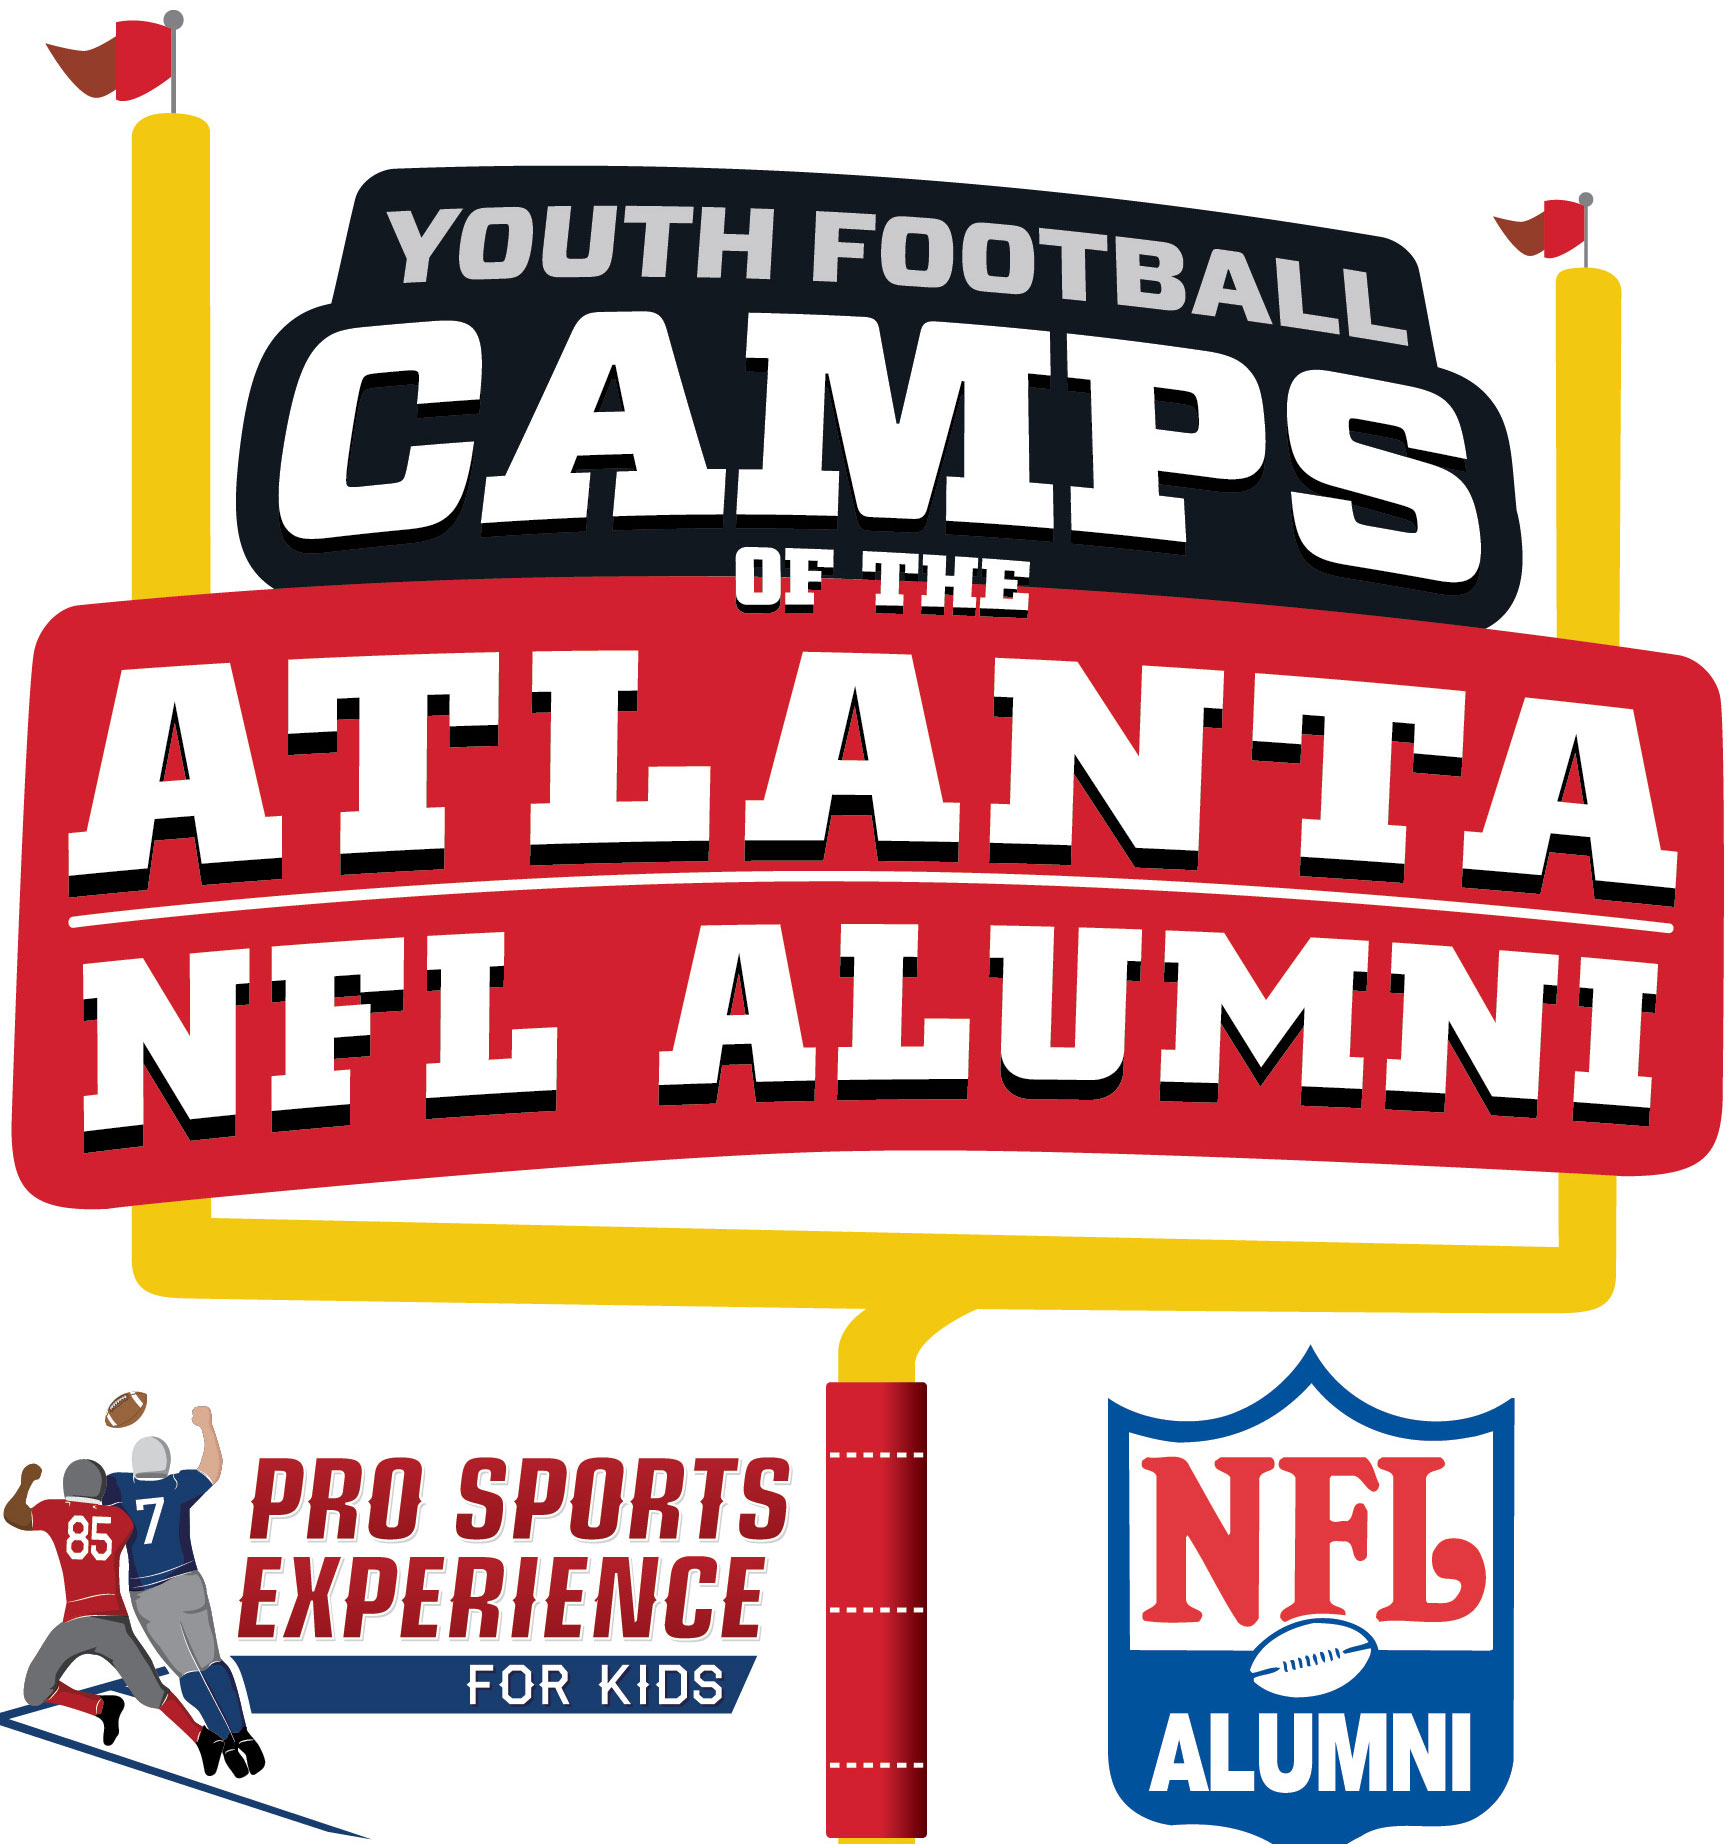 Atlanta NFL Alumni Hero Youth Football Camps - Marietta